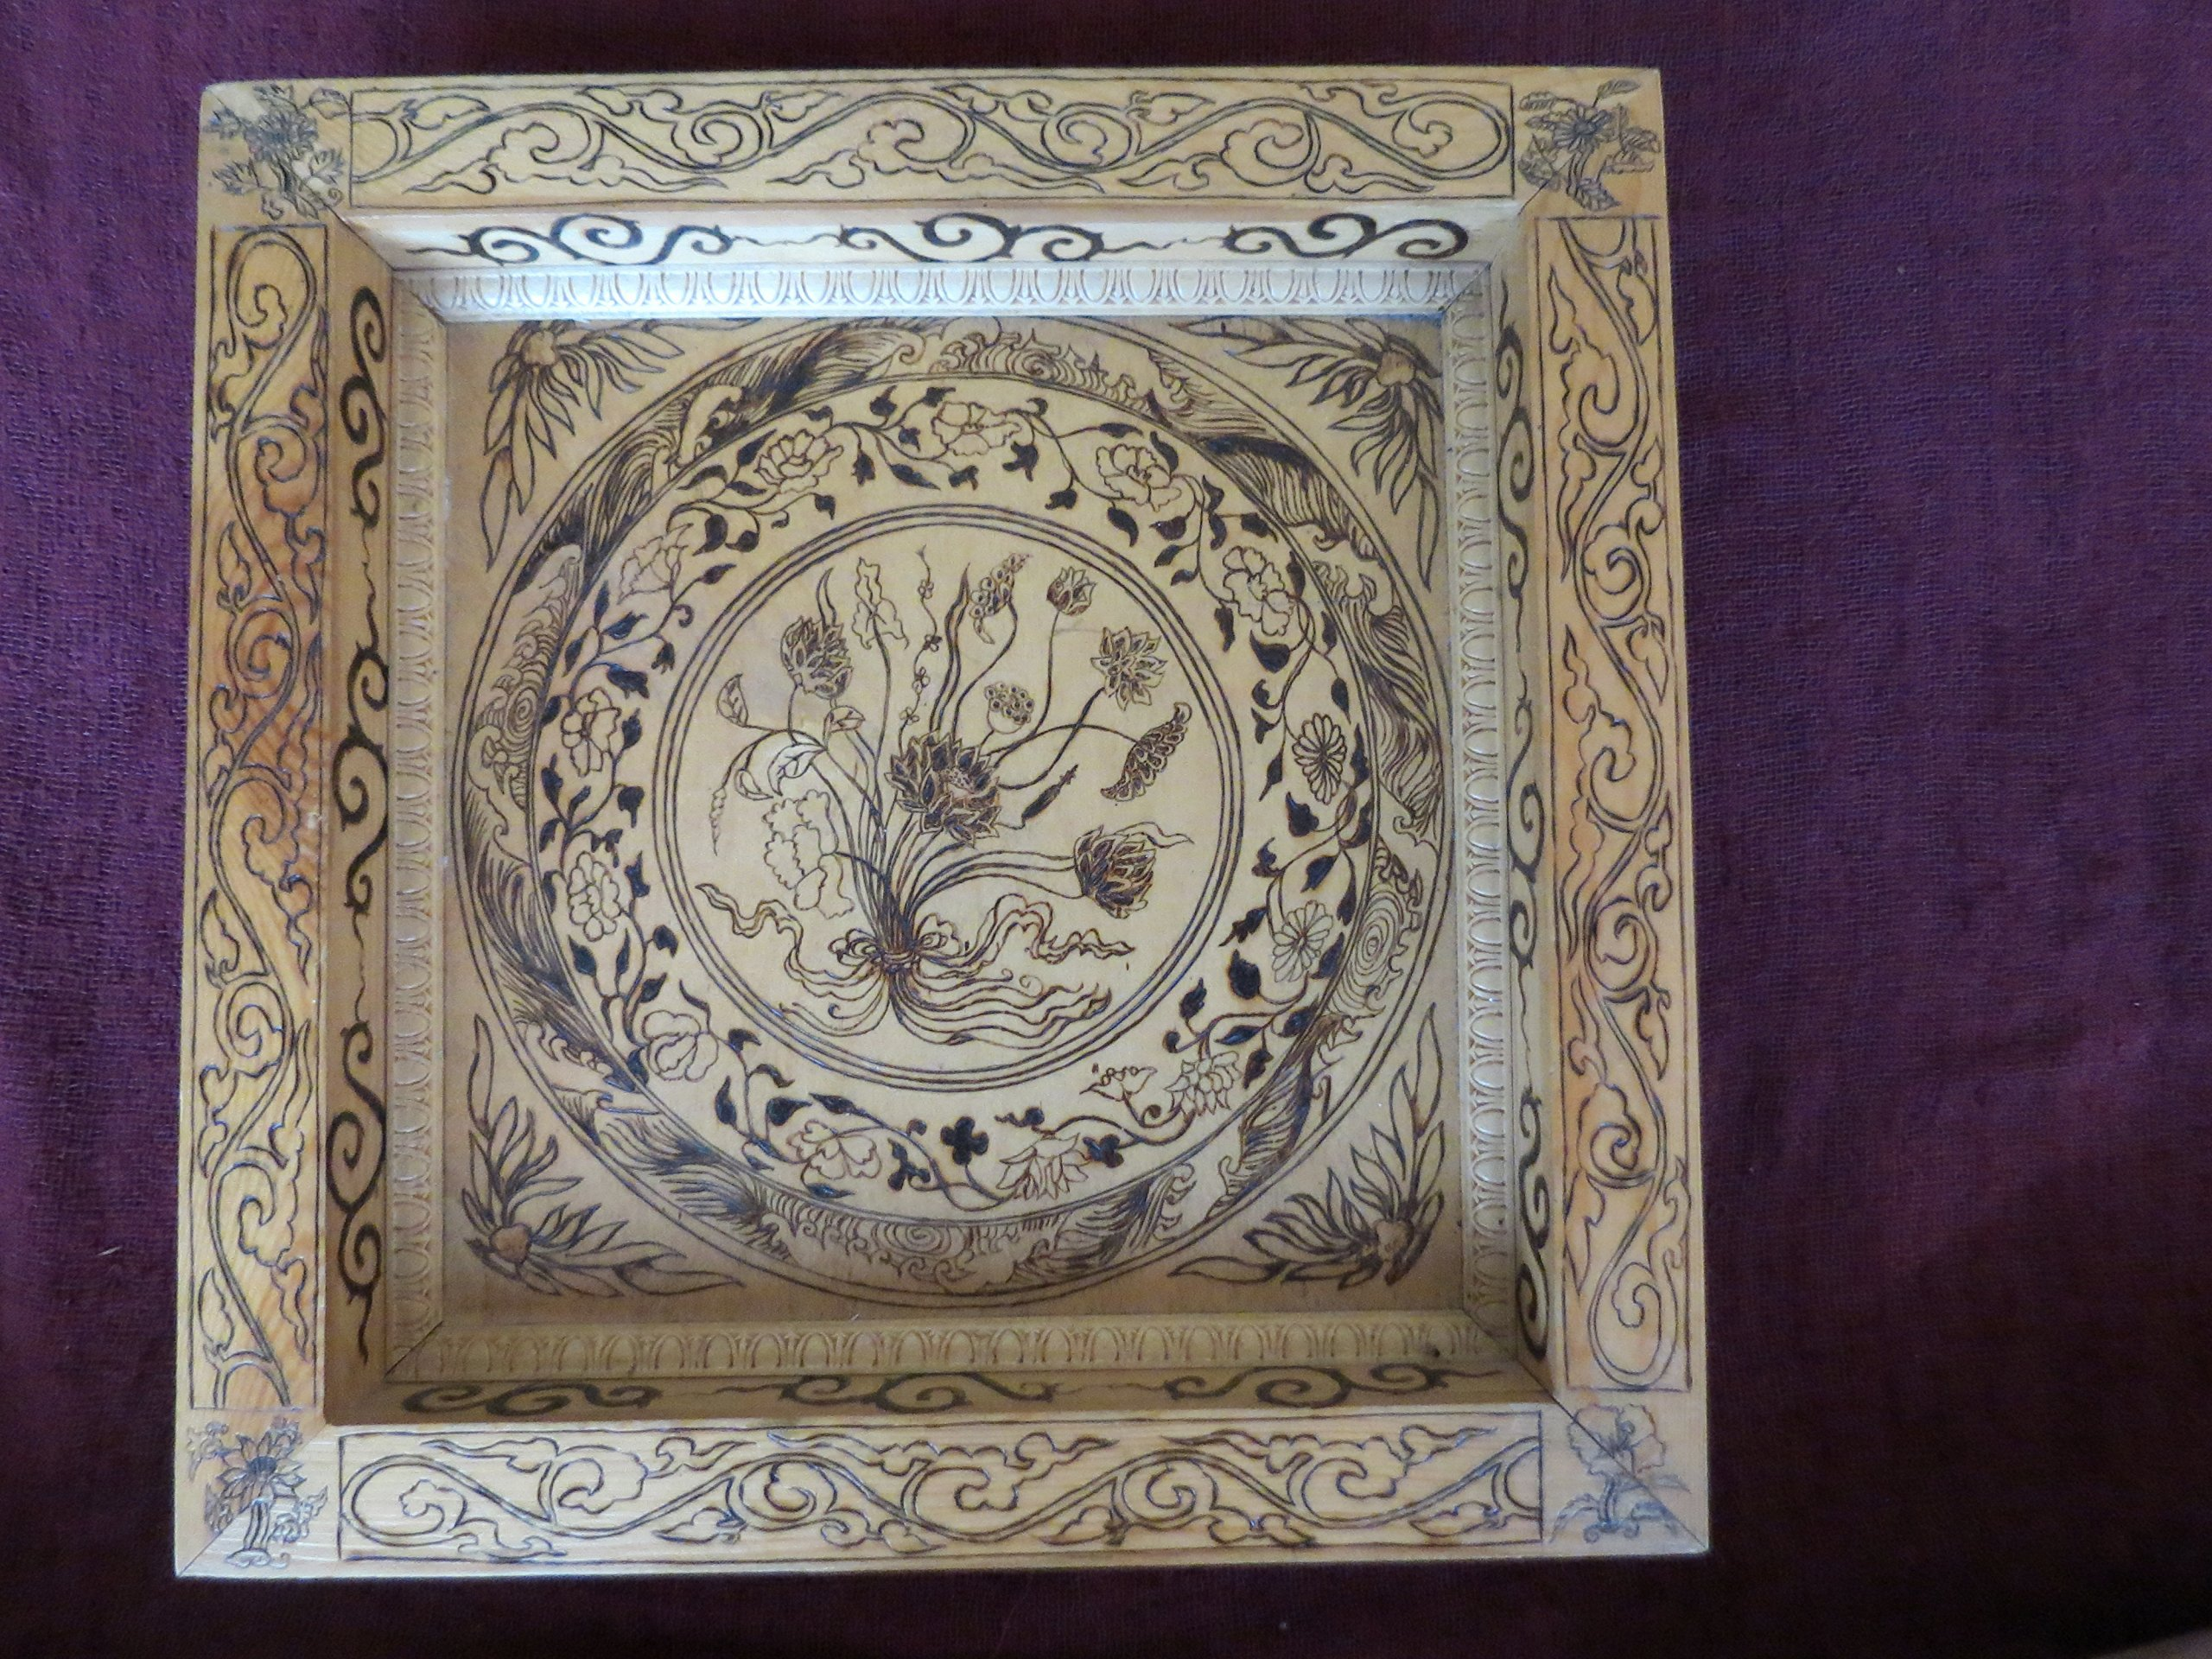 Ming Dynasty Inspired Floral Pyrography Wood Burn Art Panel by Shannon Ivins